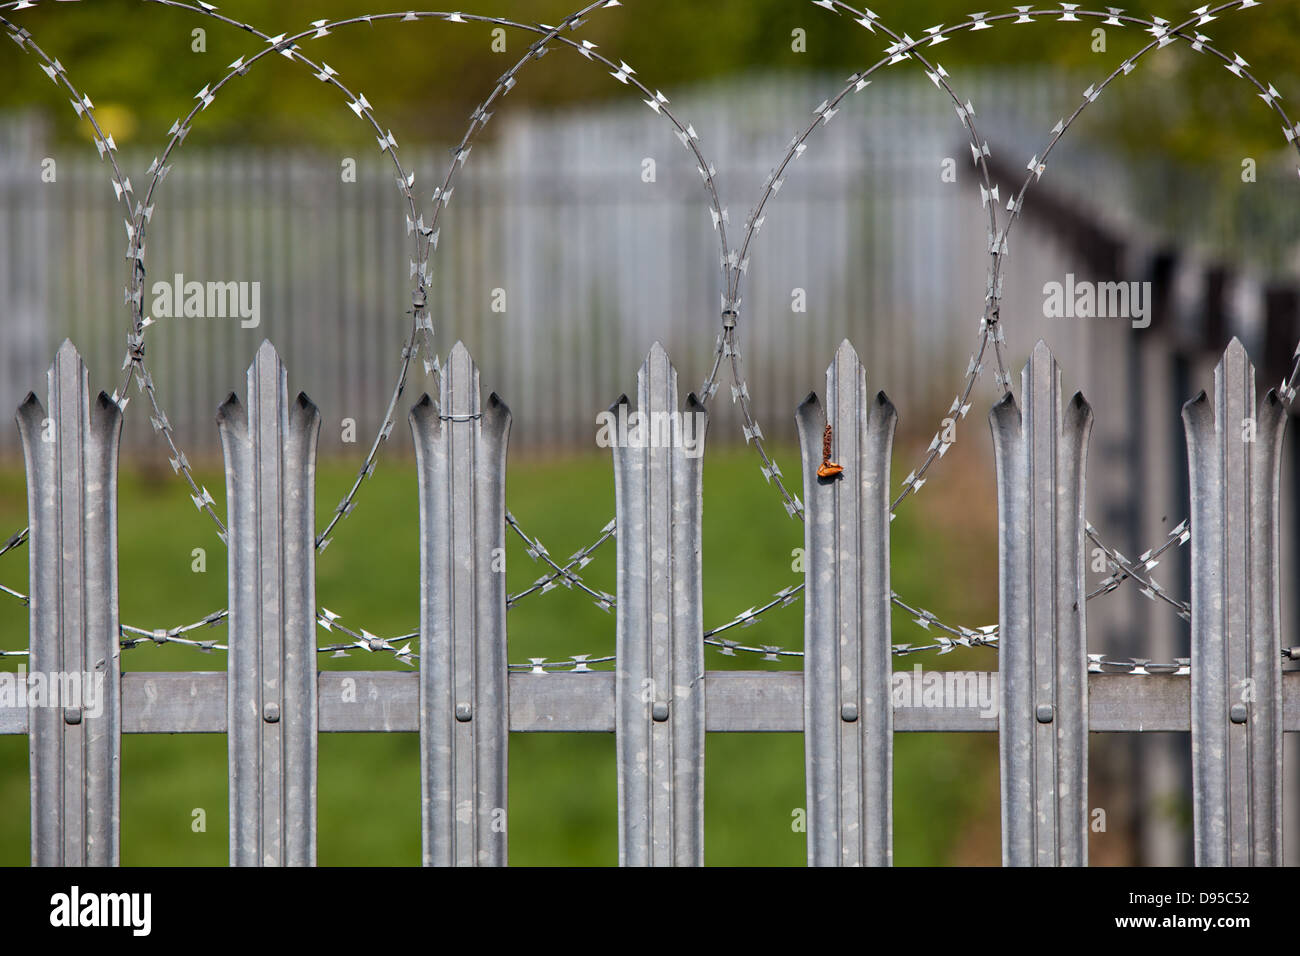 Spiked metal railings and razor wire around a secure compound. - Stock Image